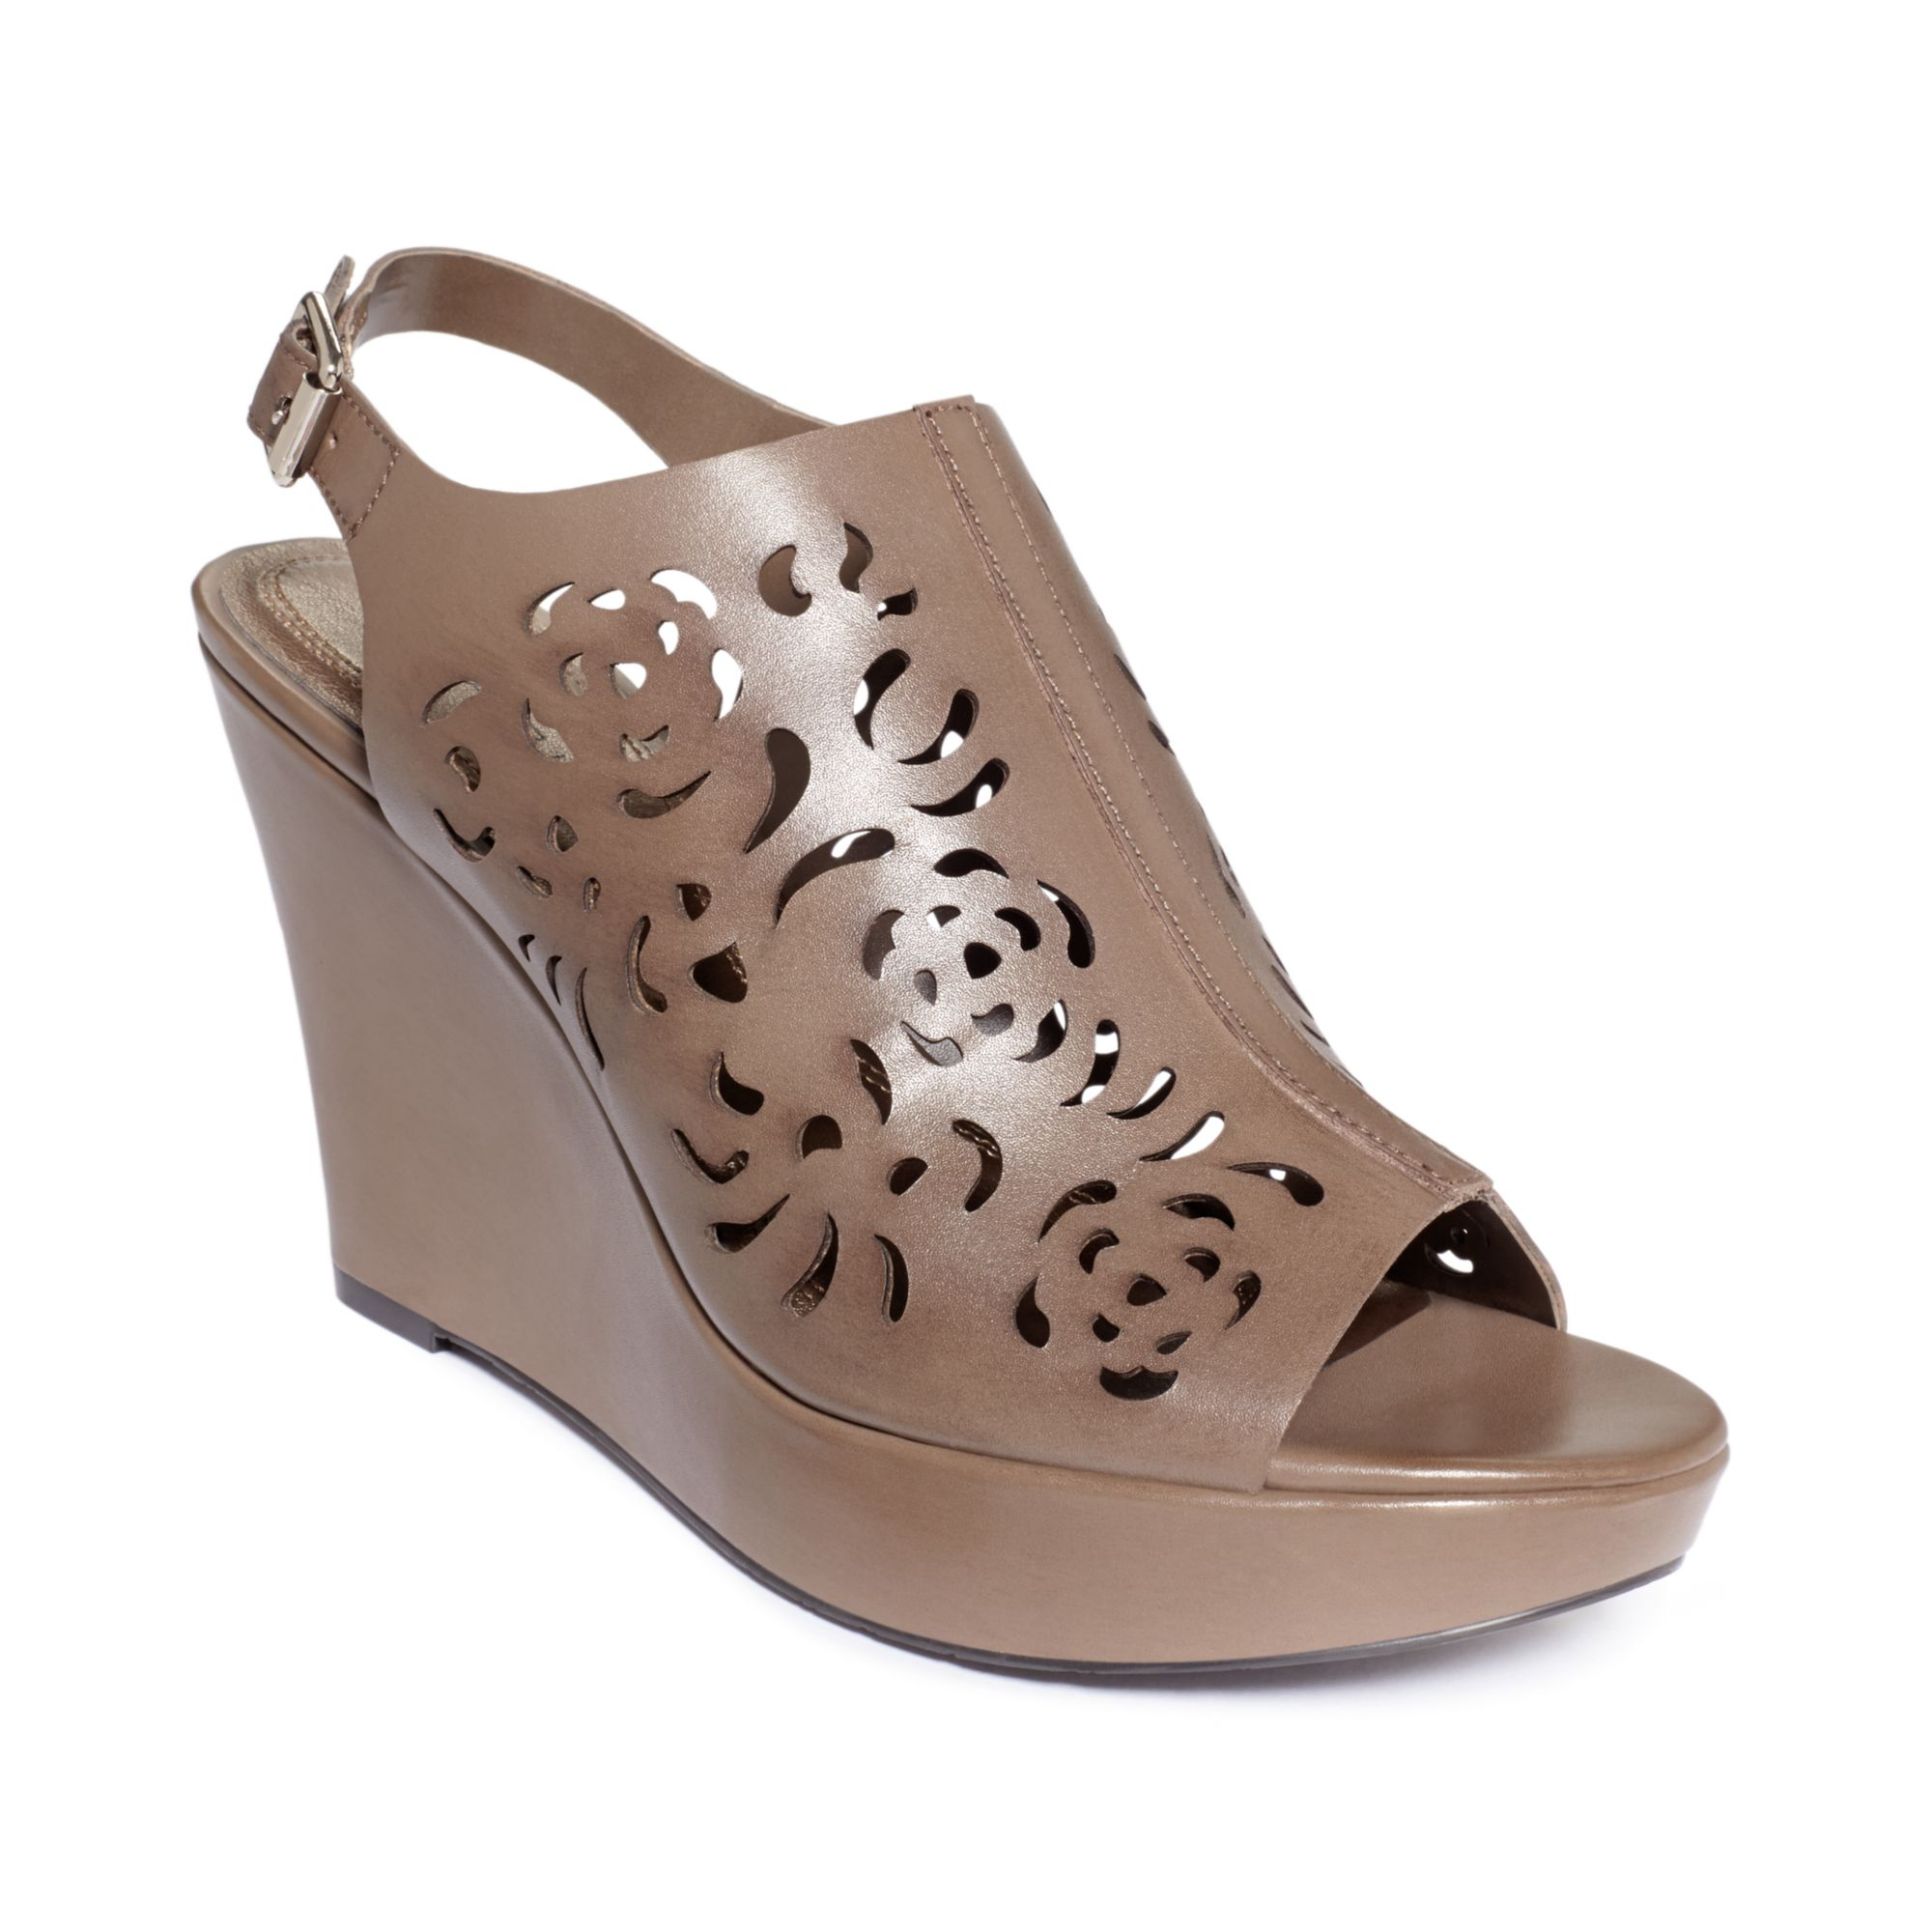 tahari womens platform wedge sandals in brown